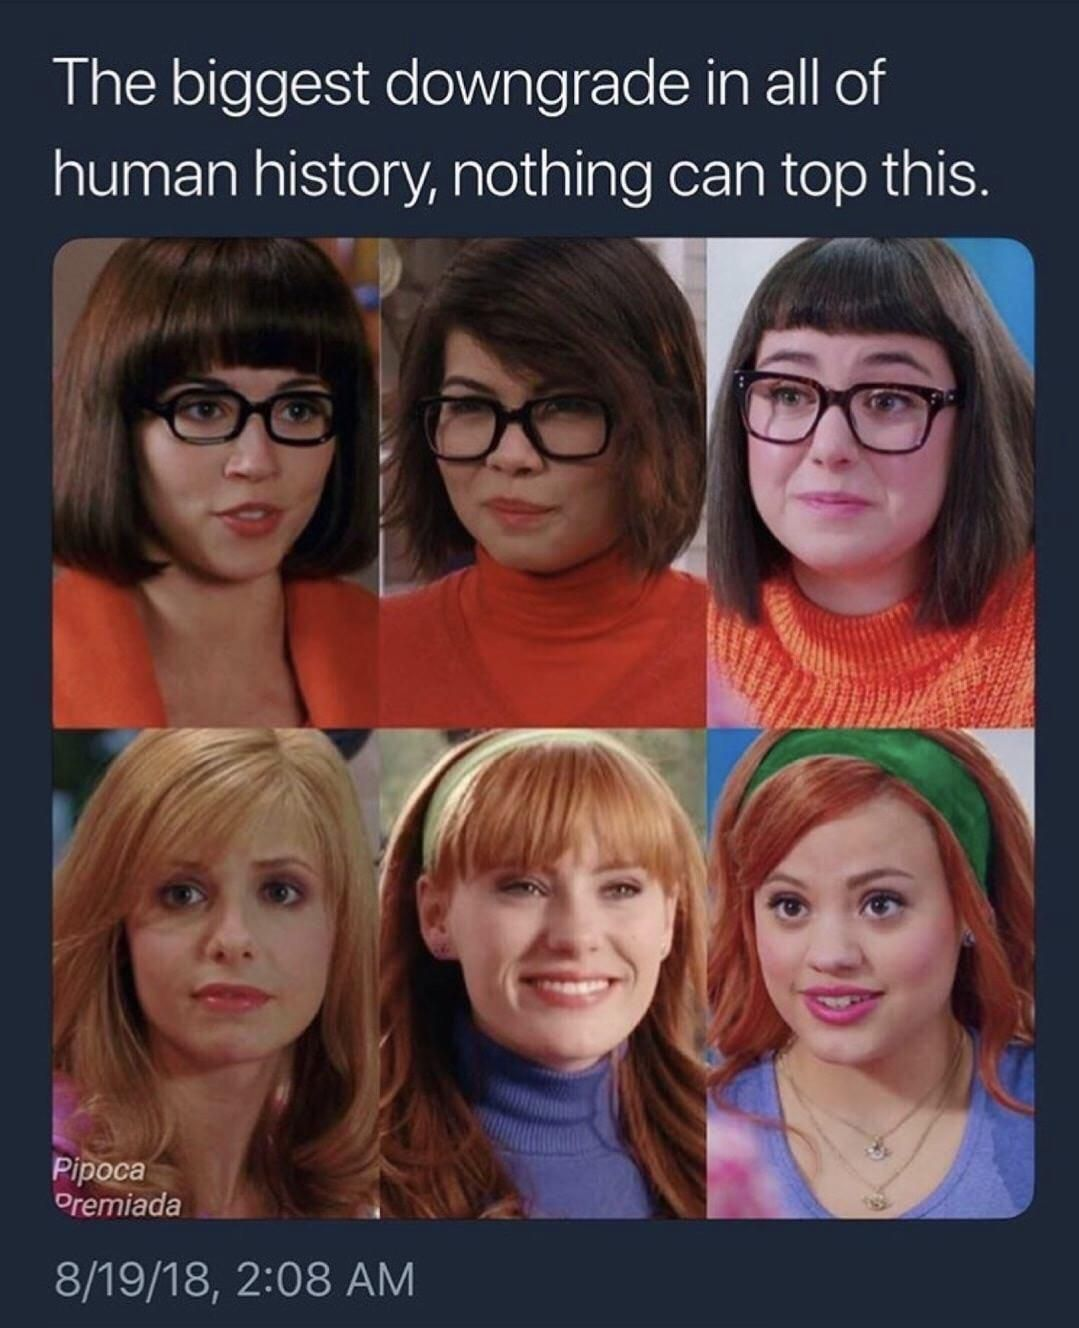 Scooby Doo Degradation Can We Make This Old Vid Go Viral Funny Photos Funny Relatable Memes Stupid Funny Memes